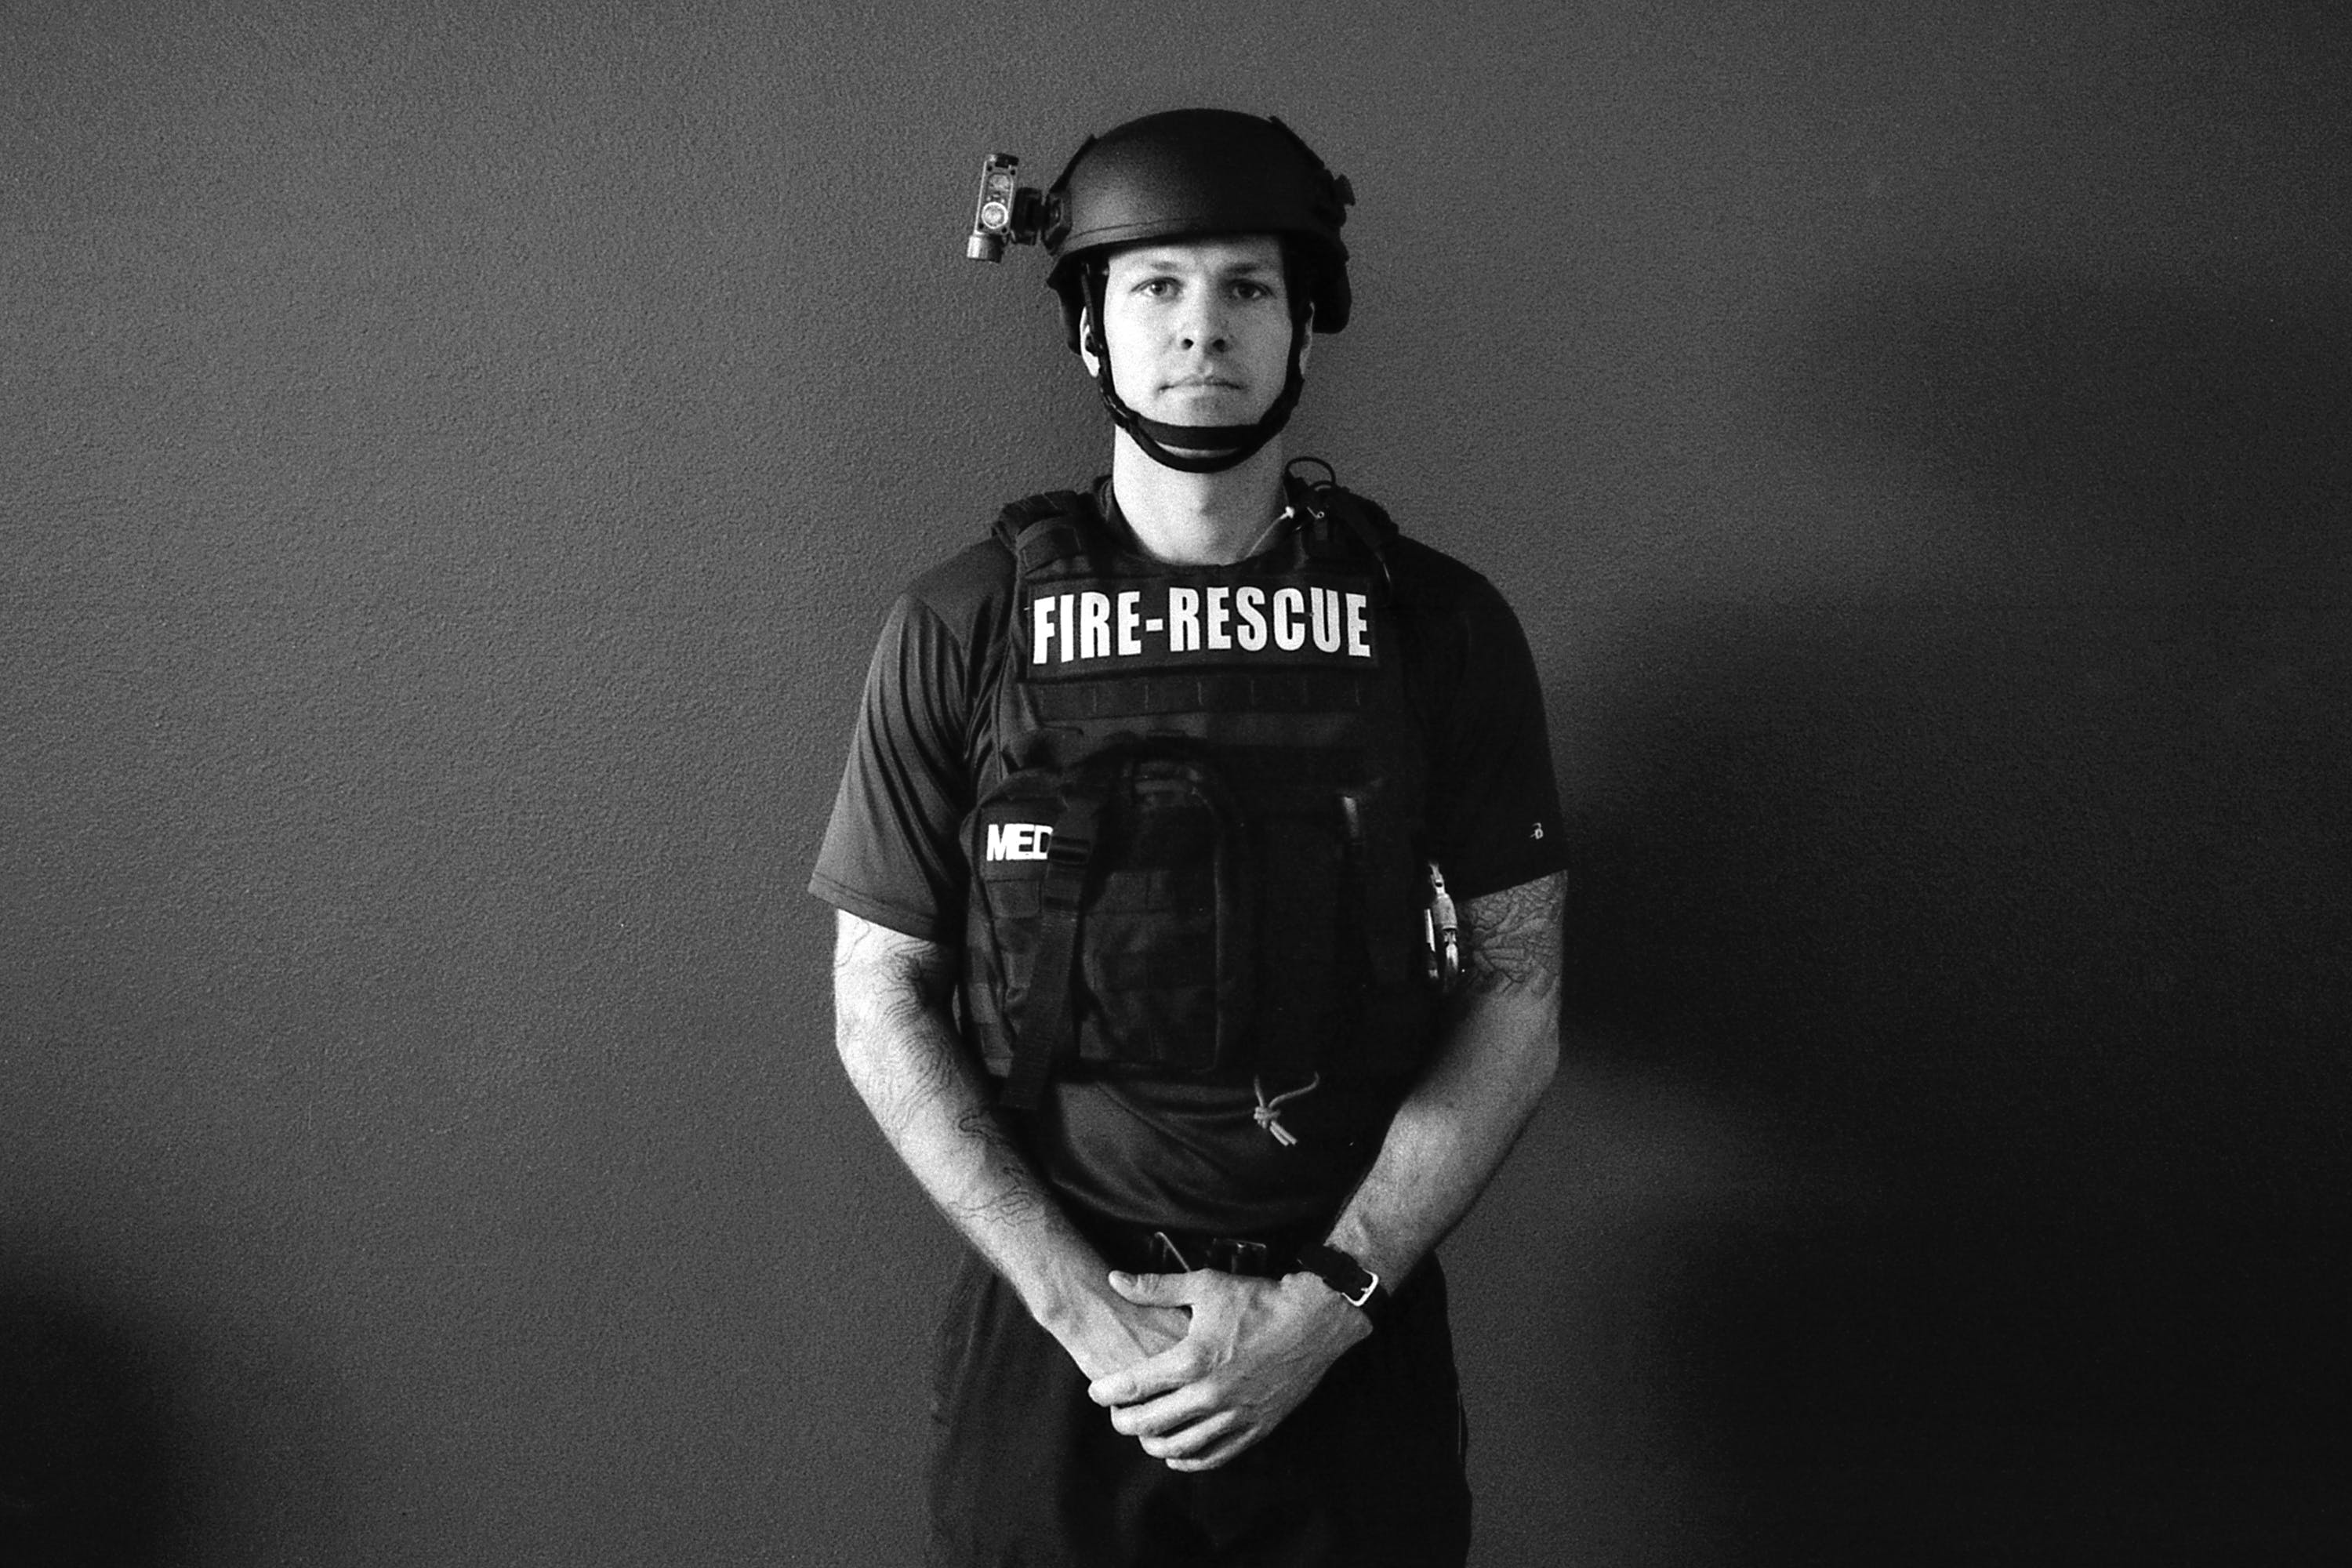 Adam Fry, Tactical Rescue, San Antonio Fire Department, Station 11.